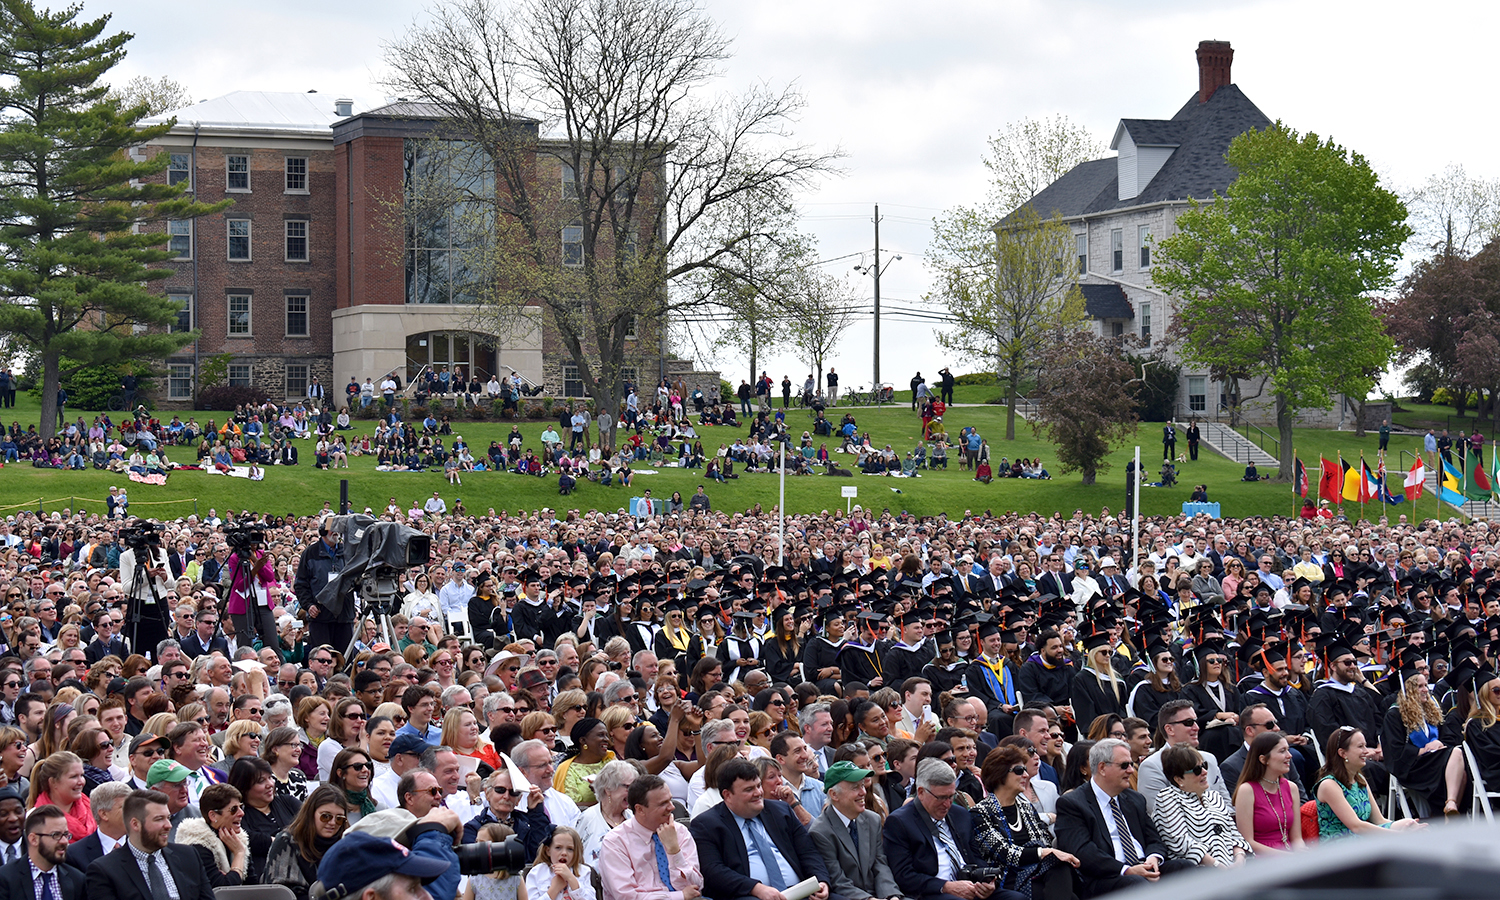 The Classes of 2017 and their families fill the Quad for Commencement on Sunday.